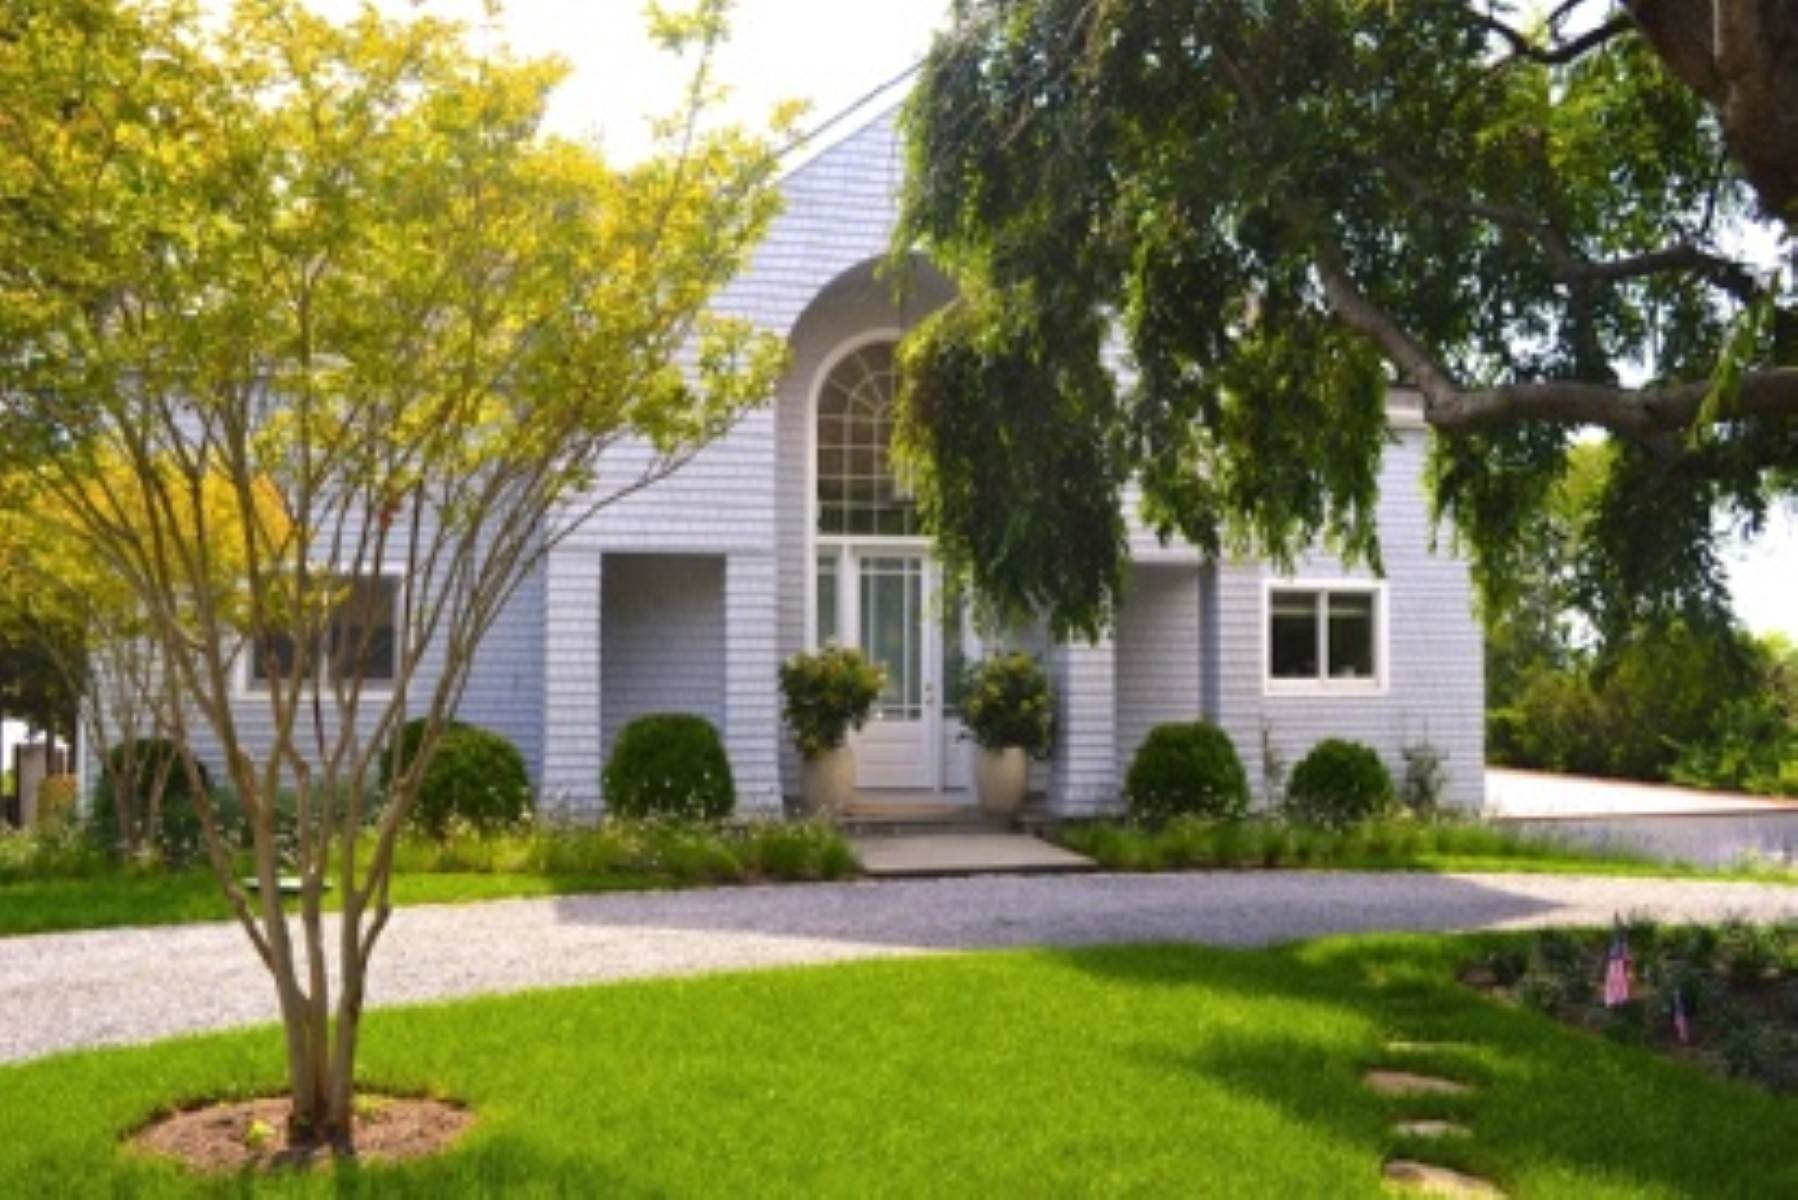 Single Family Home at Sag Harbor Waterfront Sag Harbor, NY 11963